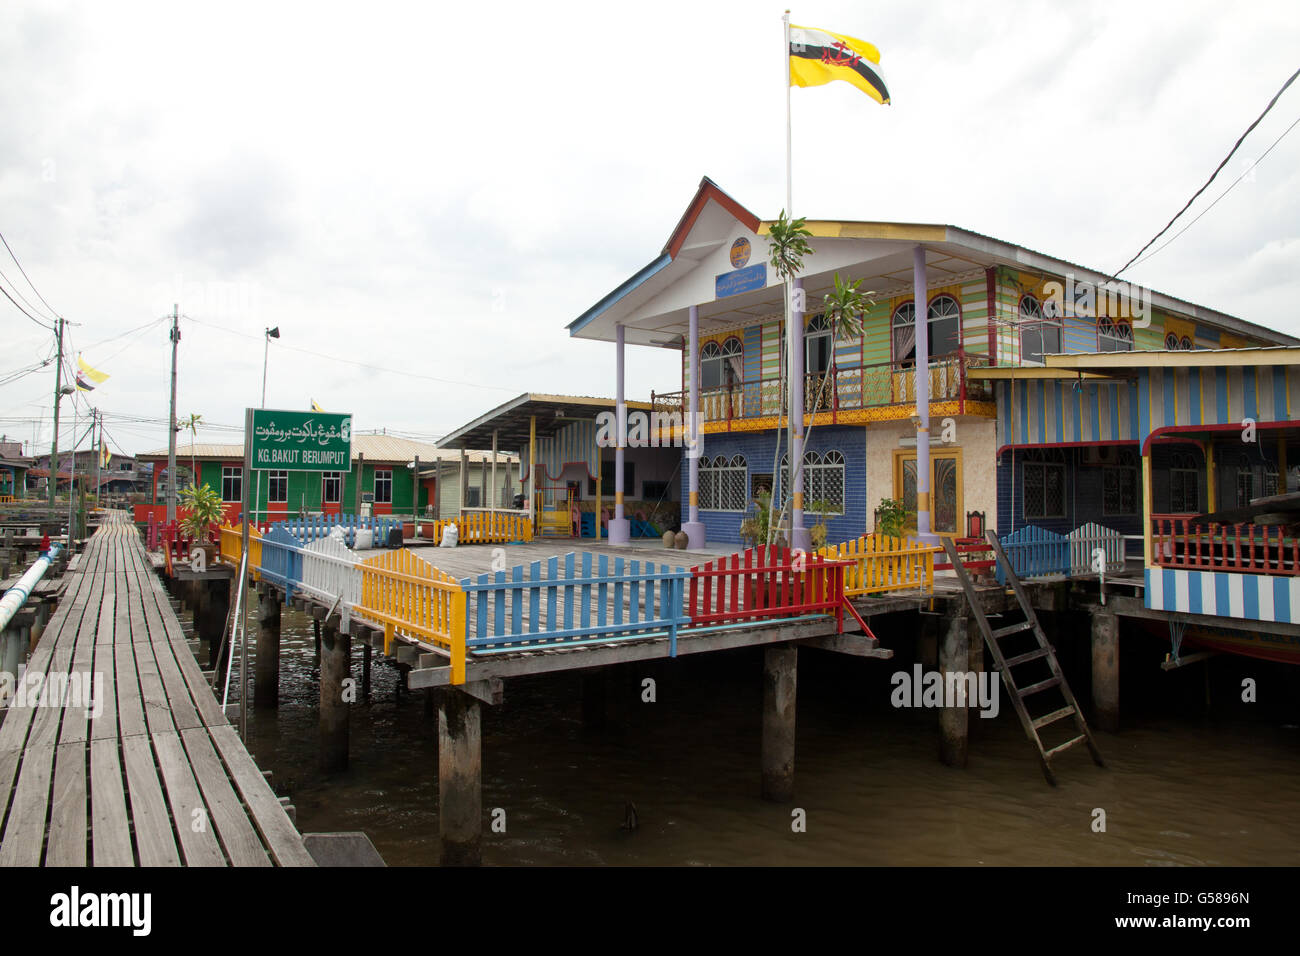 Brunei's water village called Kampong Ayer in Bandar Seri Begawan - Stock Image